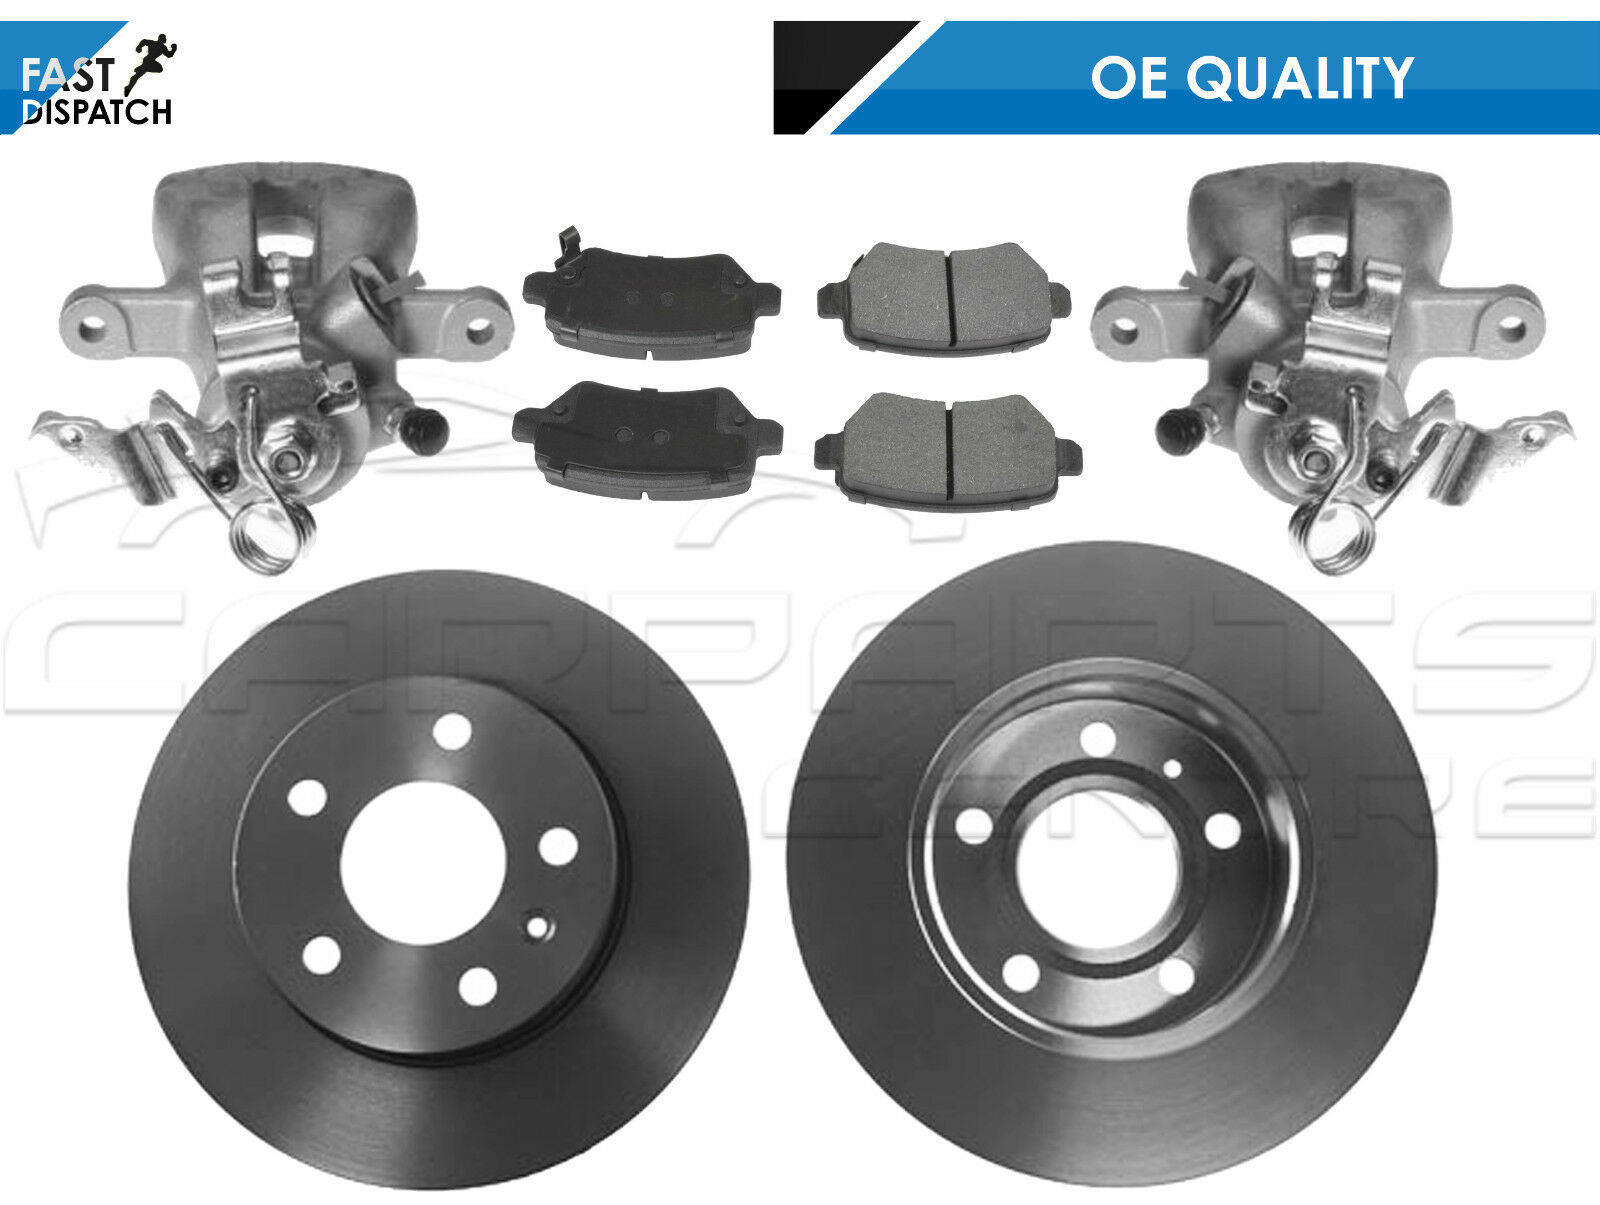 VAUXHALL ASTRA H 2004-2010 FRONT BRAKE DISCS 5 STUD  AND FRONT BRAKE PAD SET